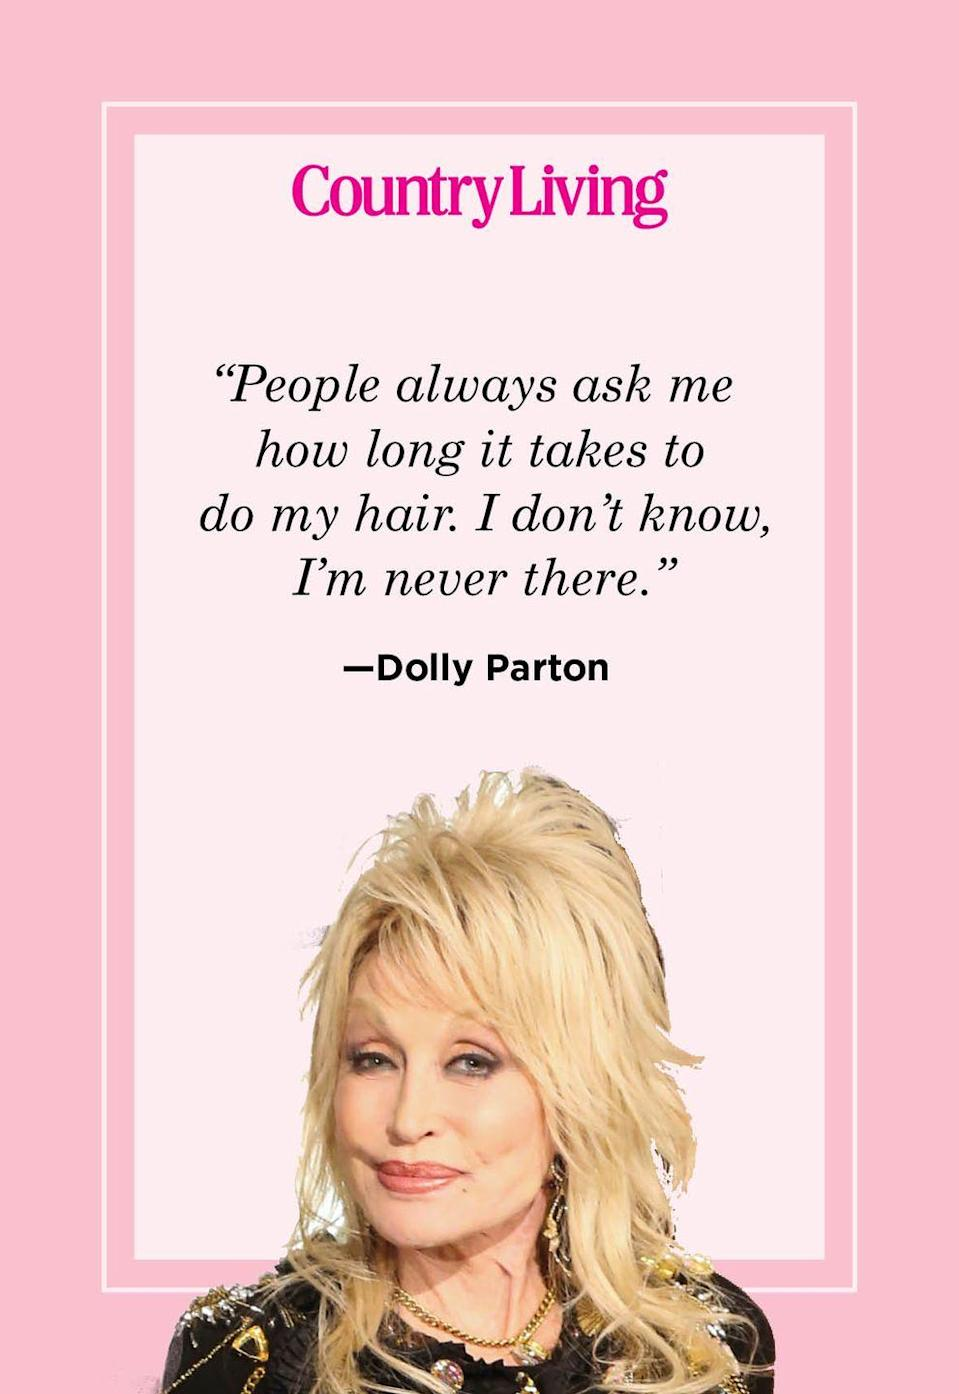 "<p>""People always ask me how long it takes to do my hair. I don't know, I'm never there.""</p>"